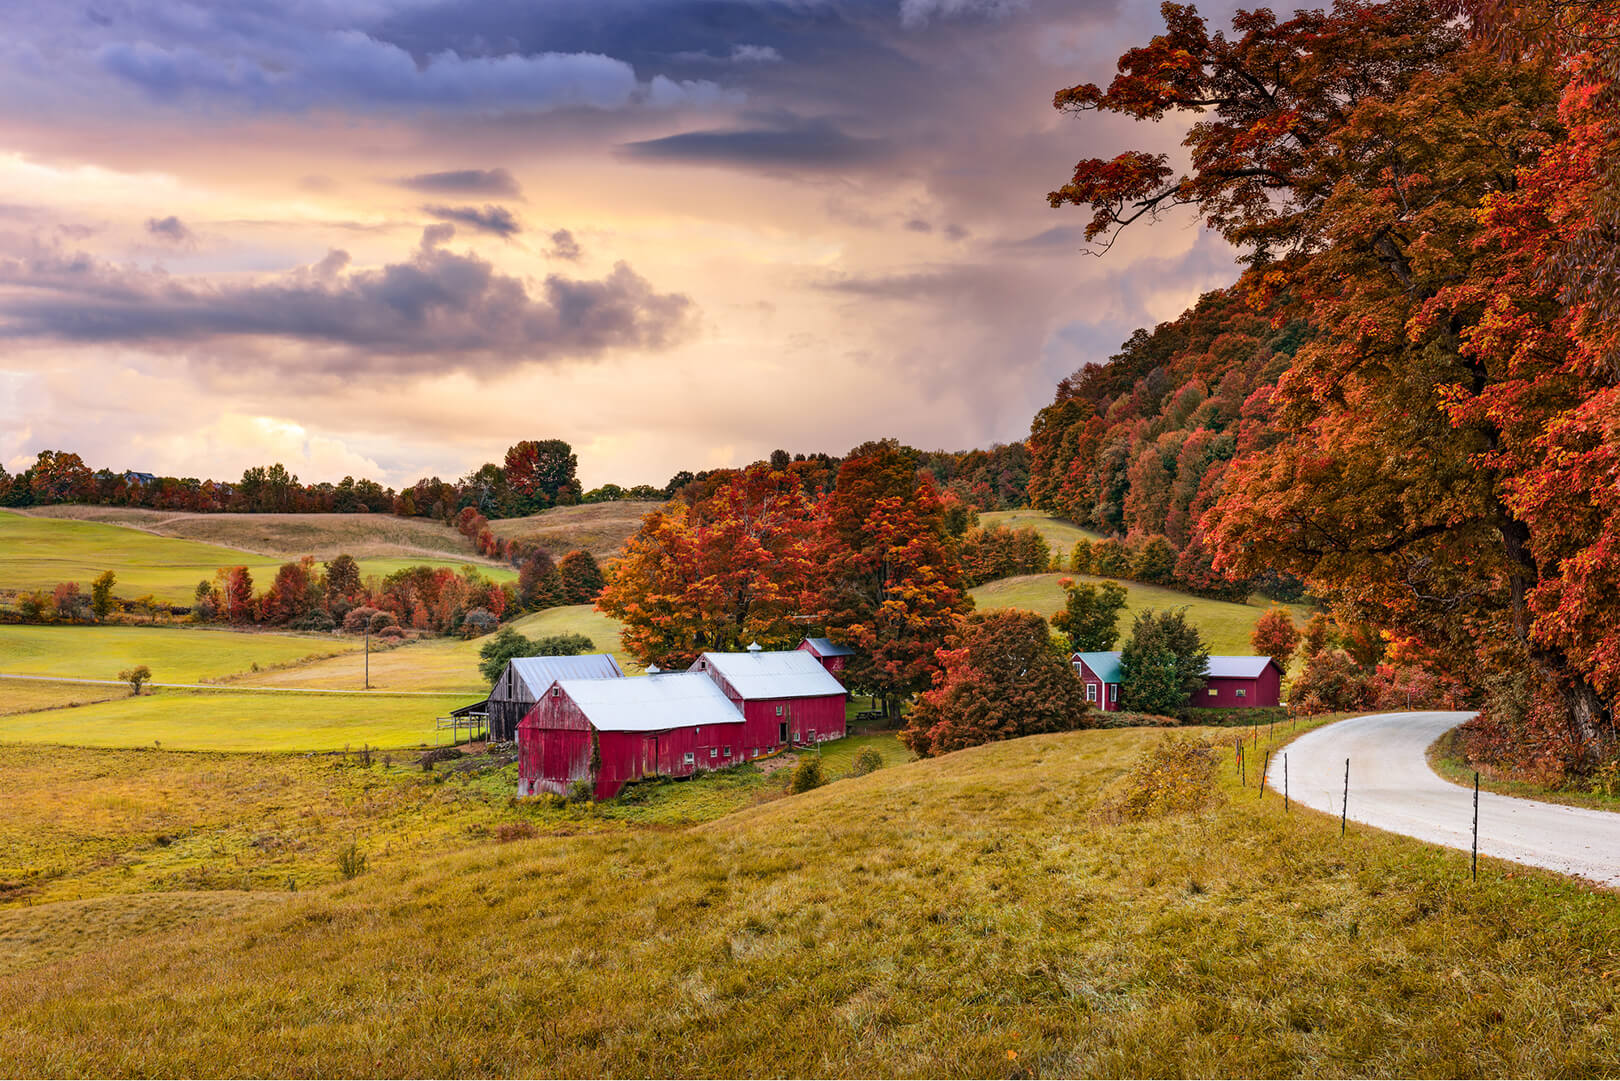 Vermont farm with red barns on hilly landscape, with rusty orange trees and purple clouds in the background